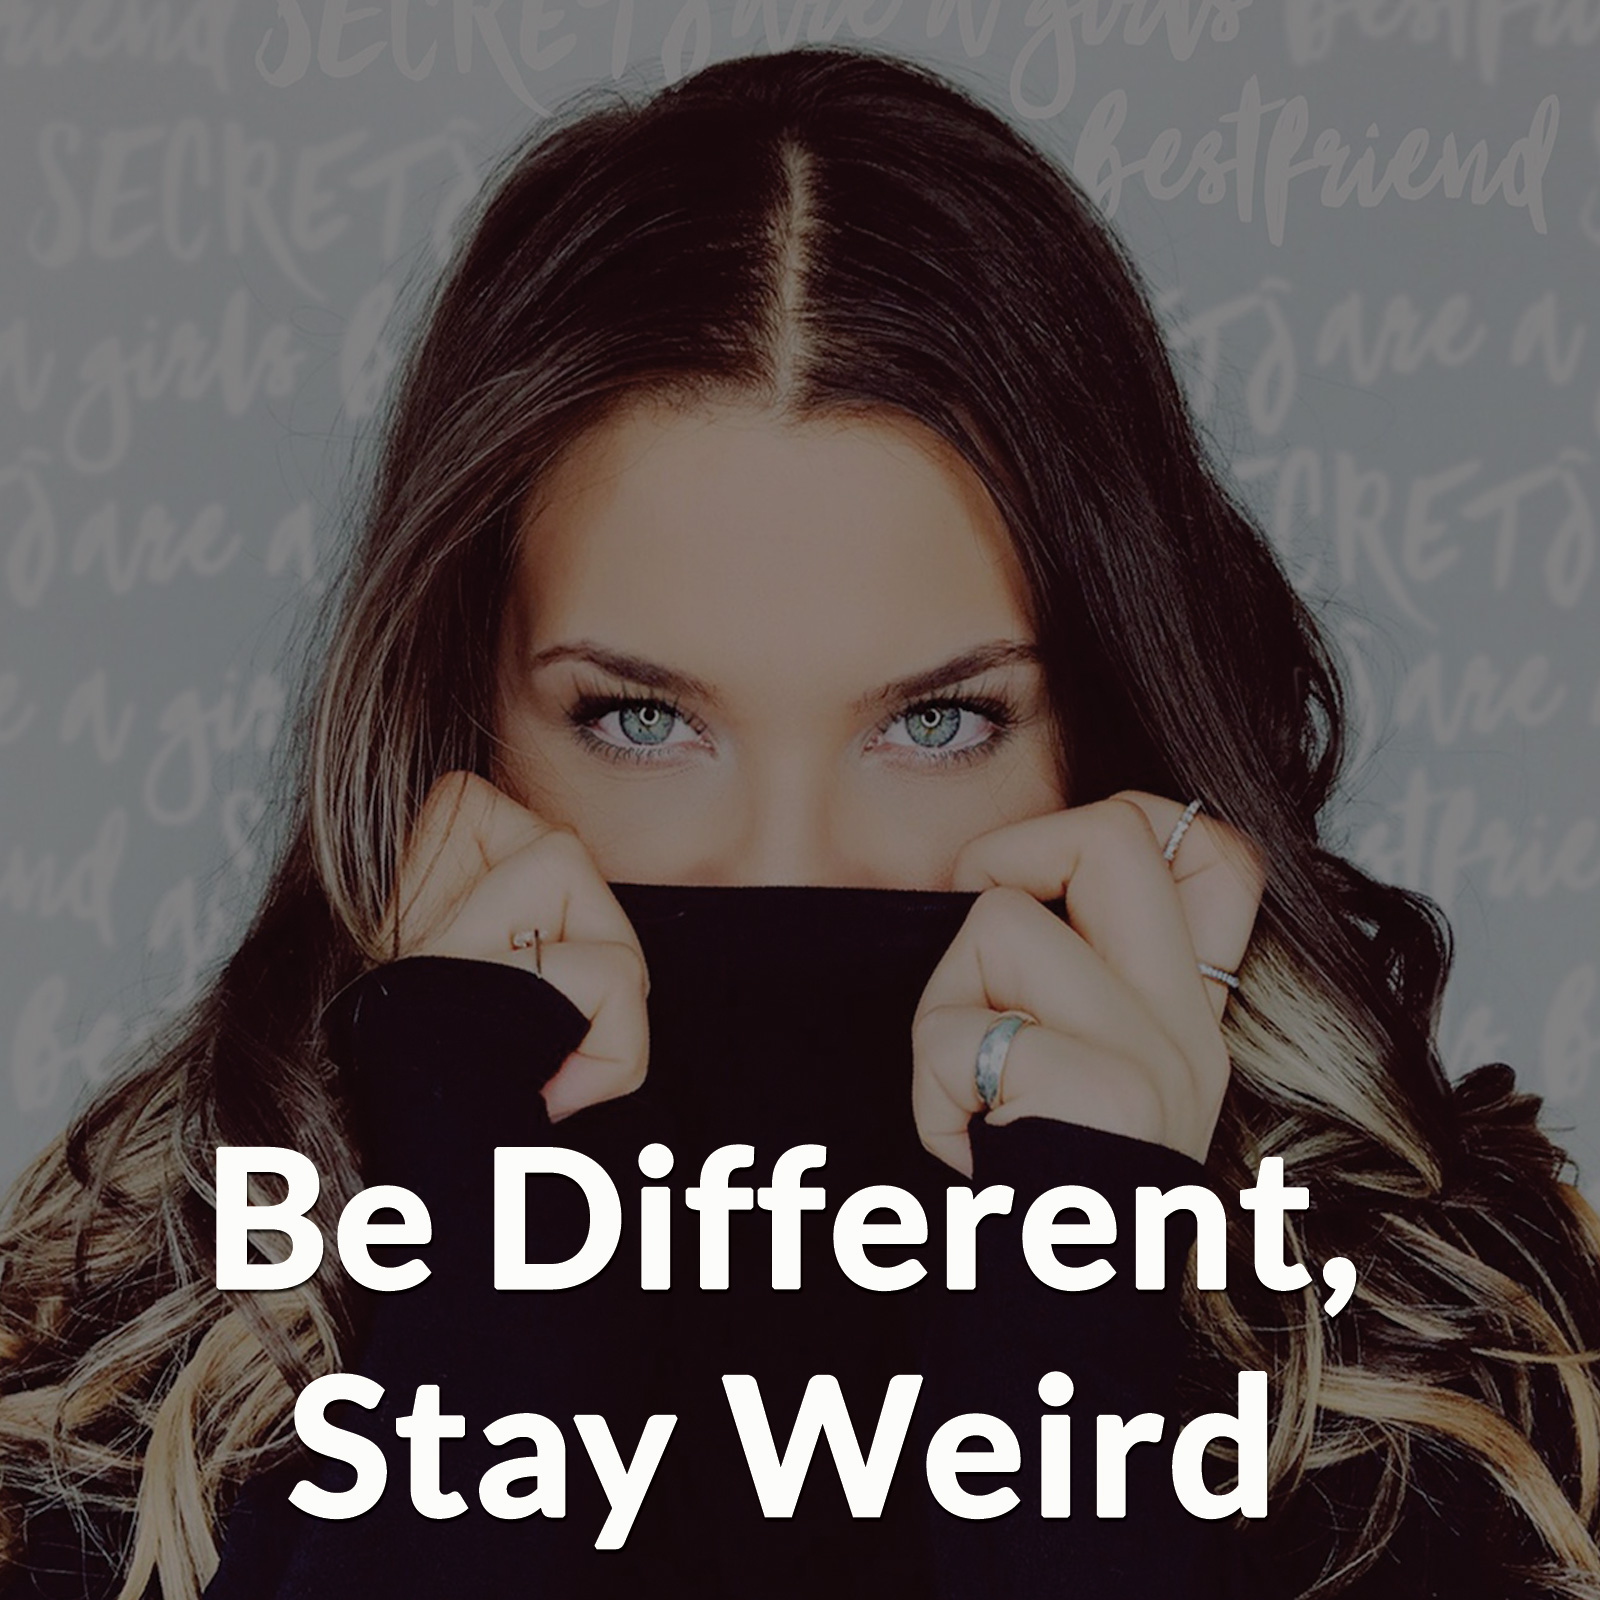 'Be Different, Stay Weird' with Dr. Dain Heer [Rebroadcast]